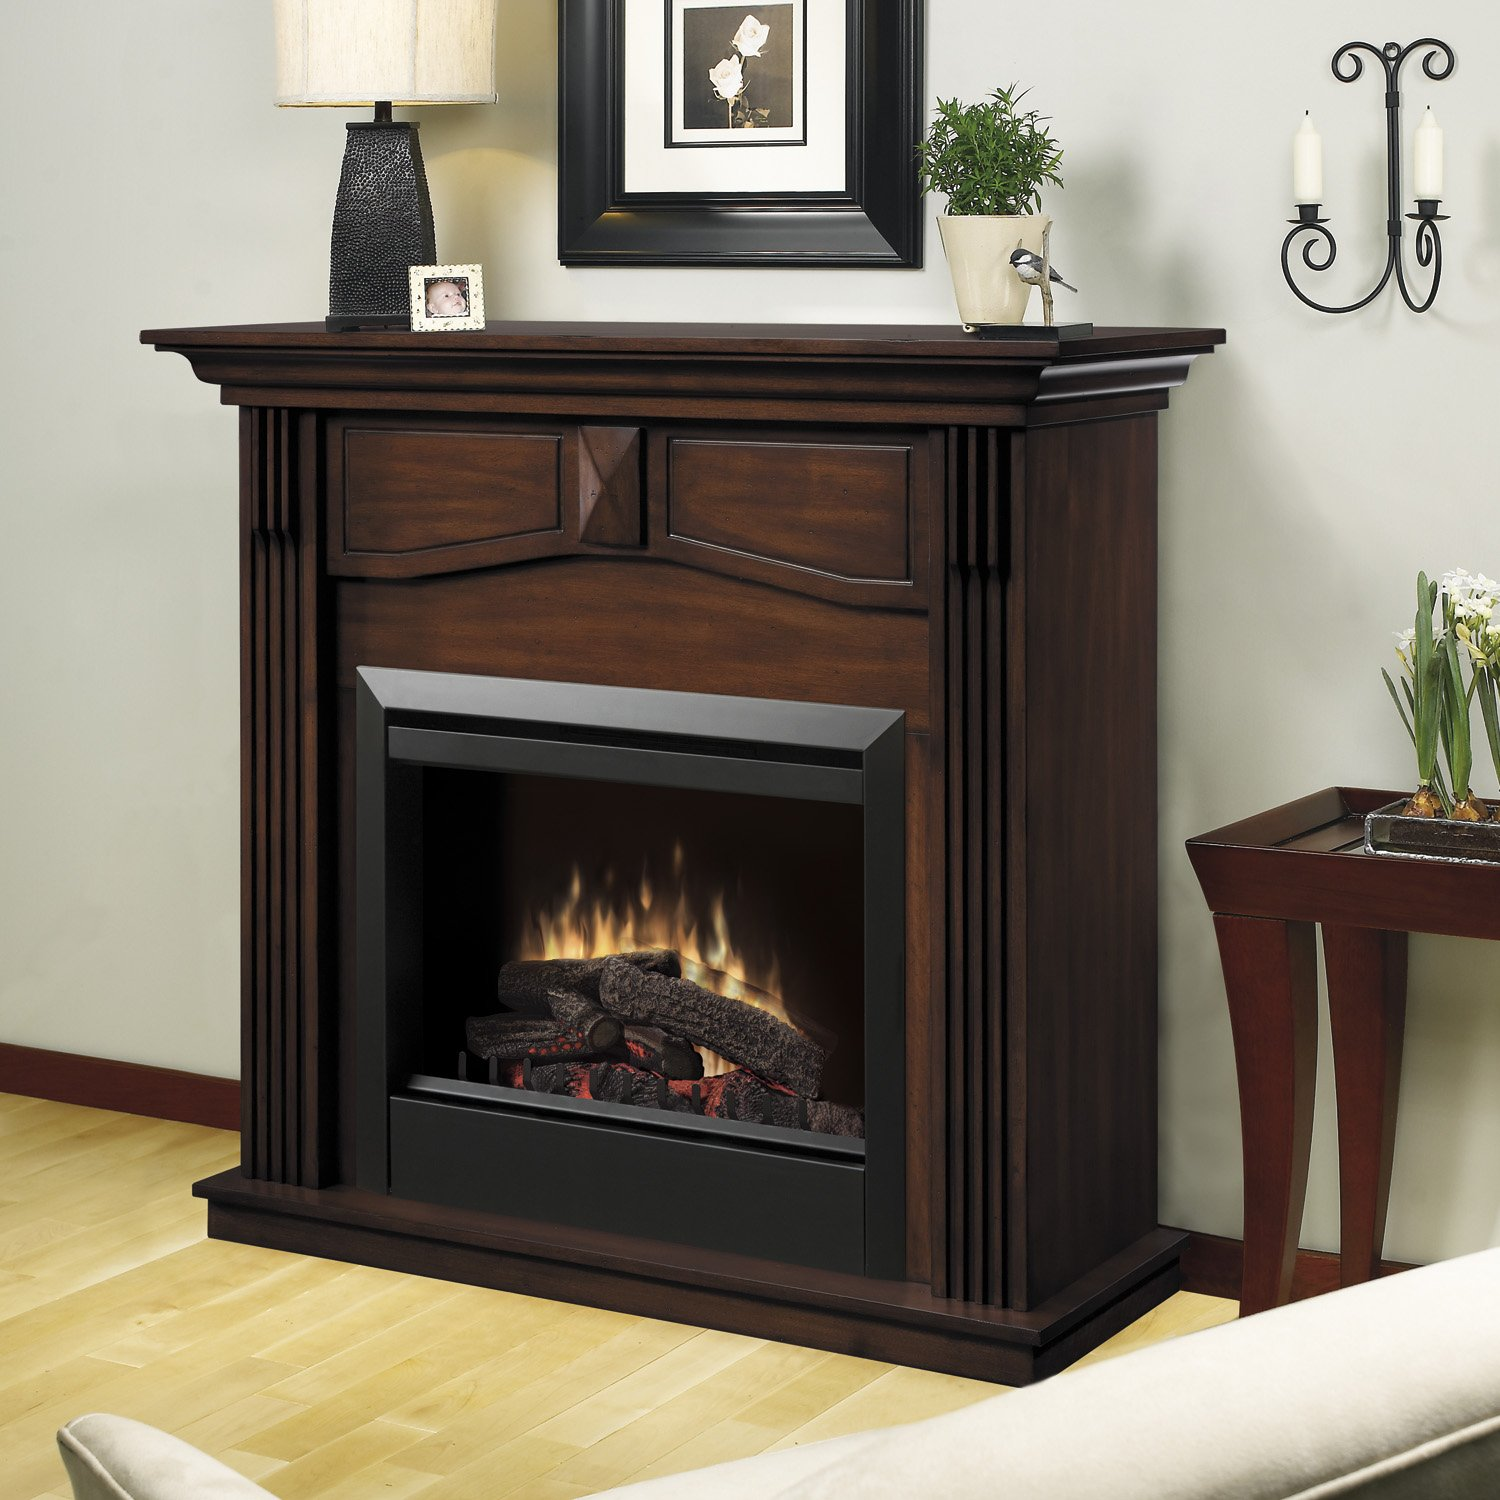 Amazon.com: Dimplex Holbrook DFP4765BW Traditional Electric Fireplace  Mantle With 23 Inch Firebox, Burnished Walnut: Home U0026 Kitchen